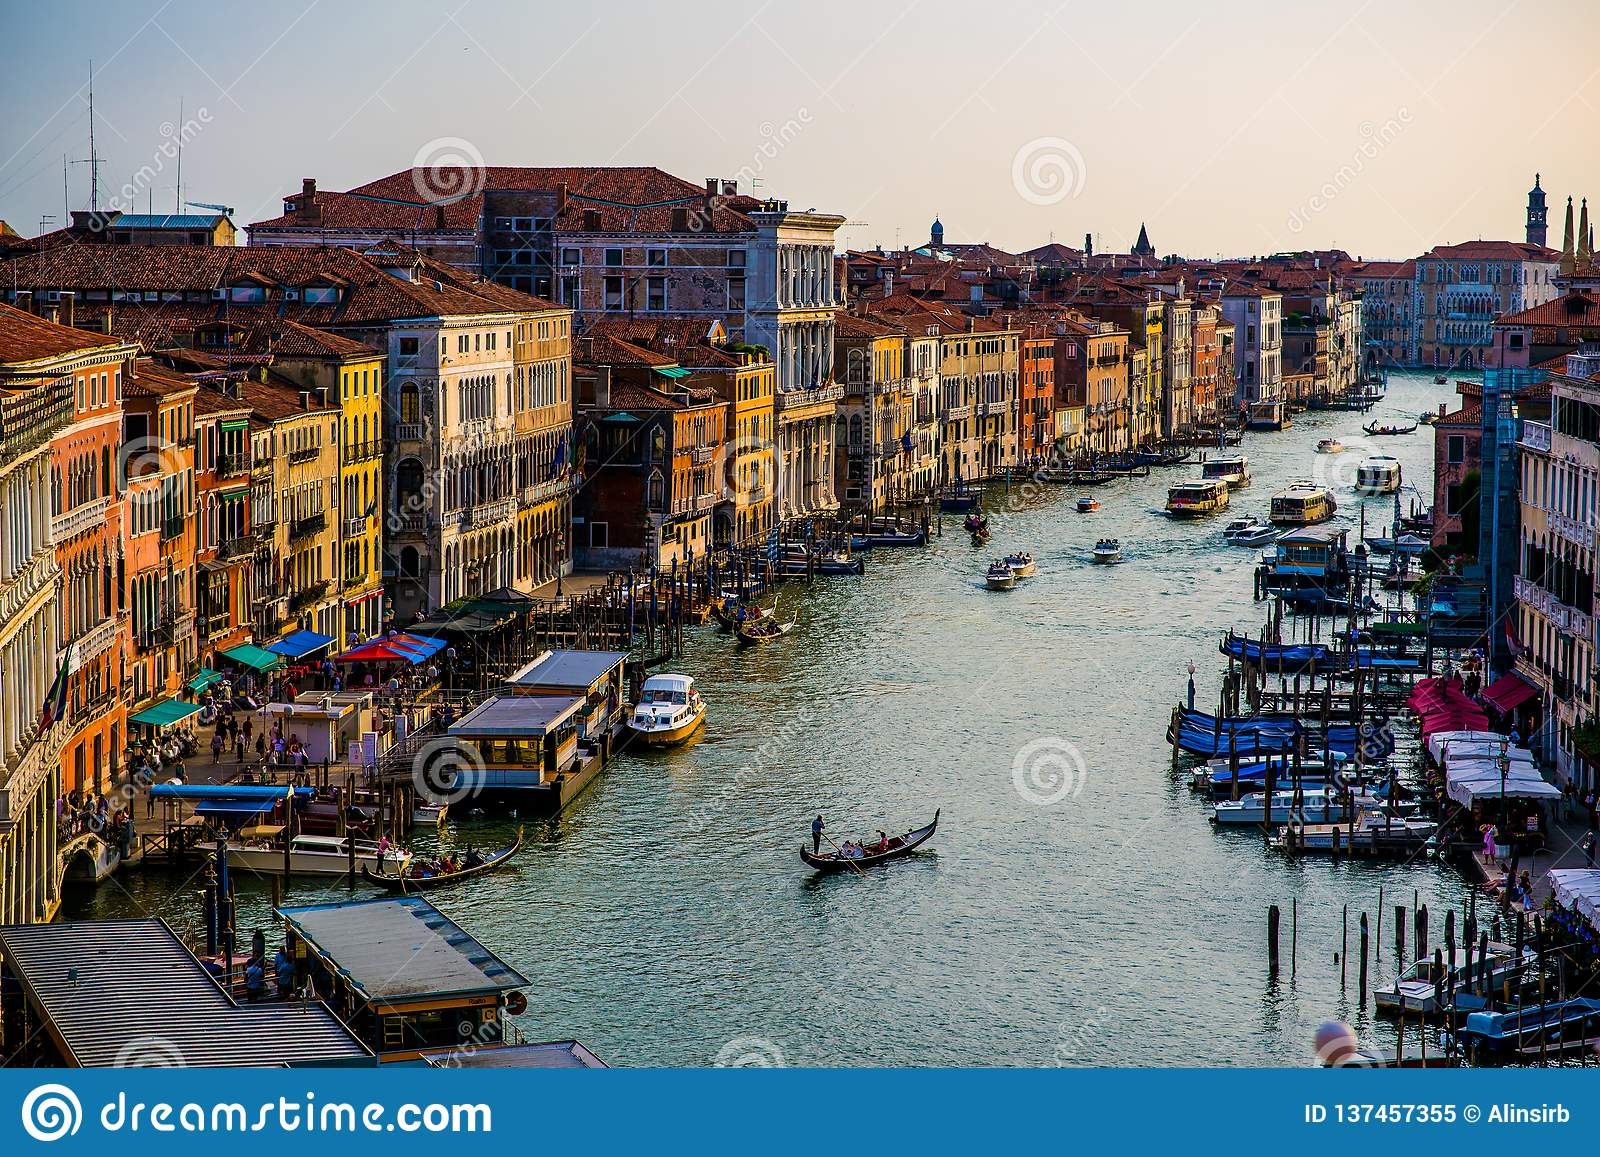 Colorful buildings in Venice before sunset